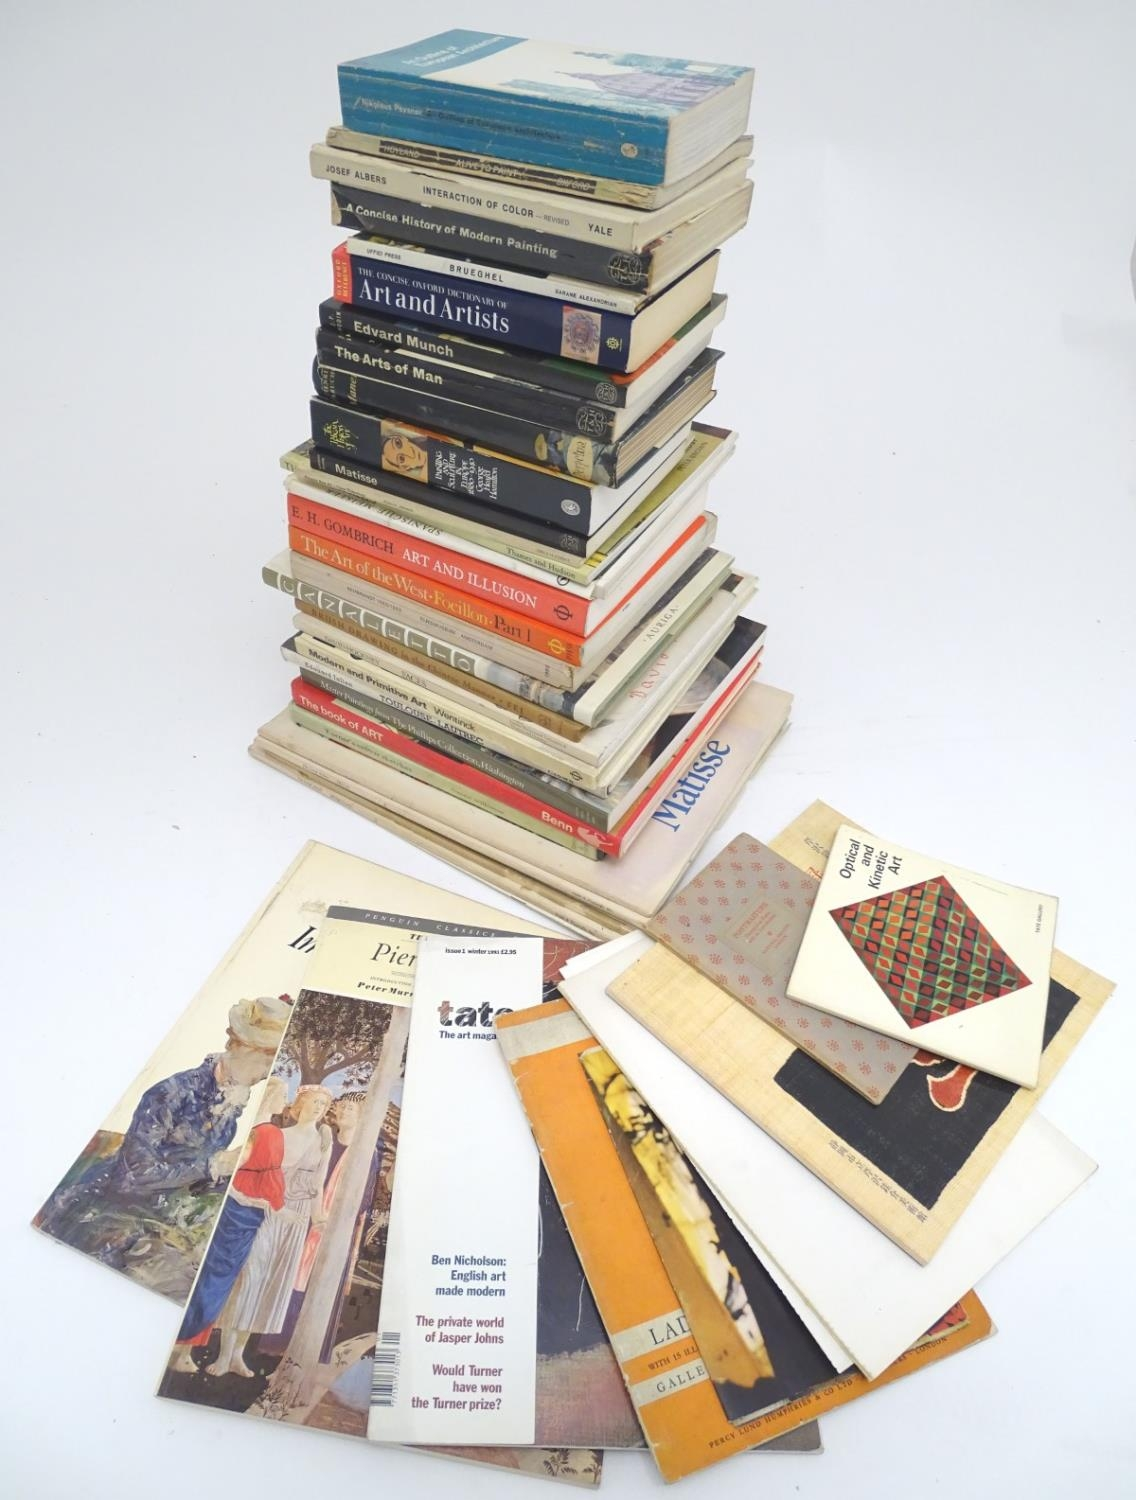 Books: A quantity of books on the subject of art. Titles to include The Art of the West, Henri